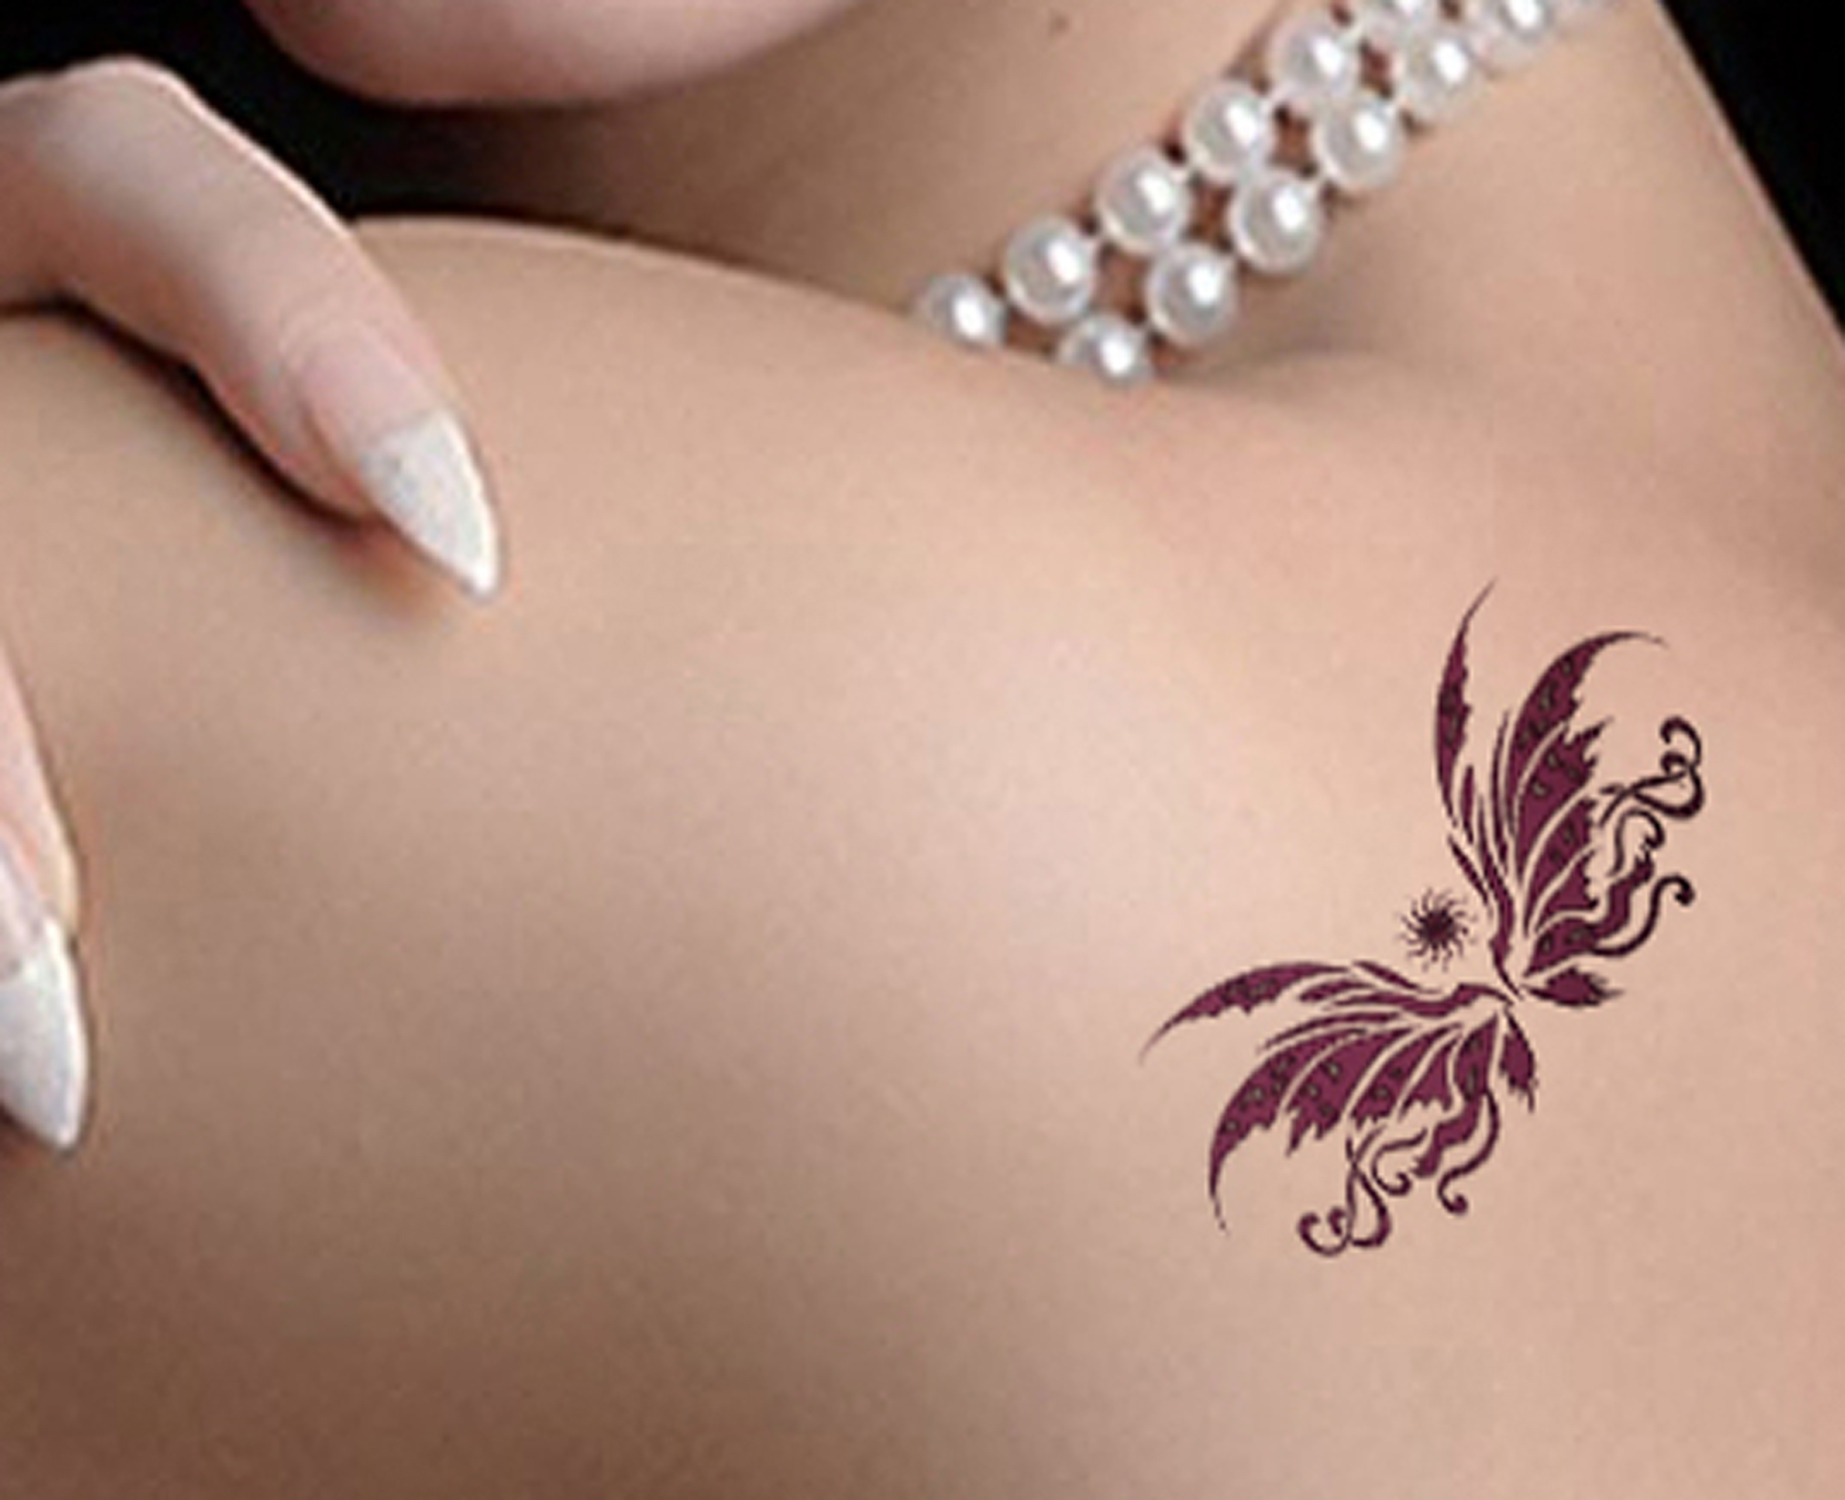 temporary tattoos paper Temporary tattoo paper, wholesale various high quality temporary tattoo paper products from global temporary tattoo paper suppliers and temporary tattoo paper factory.